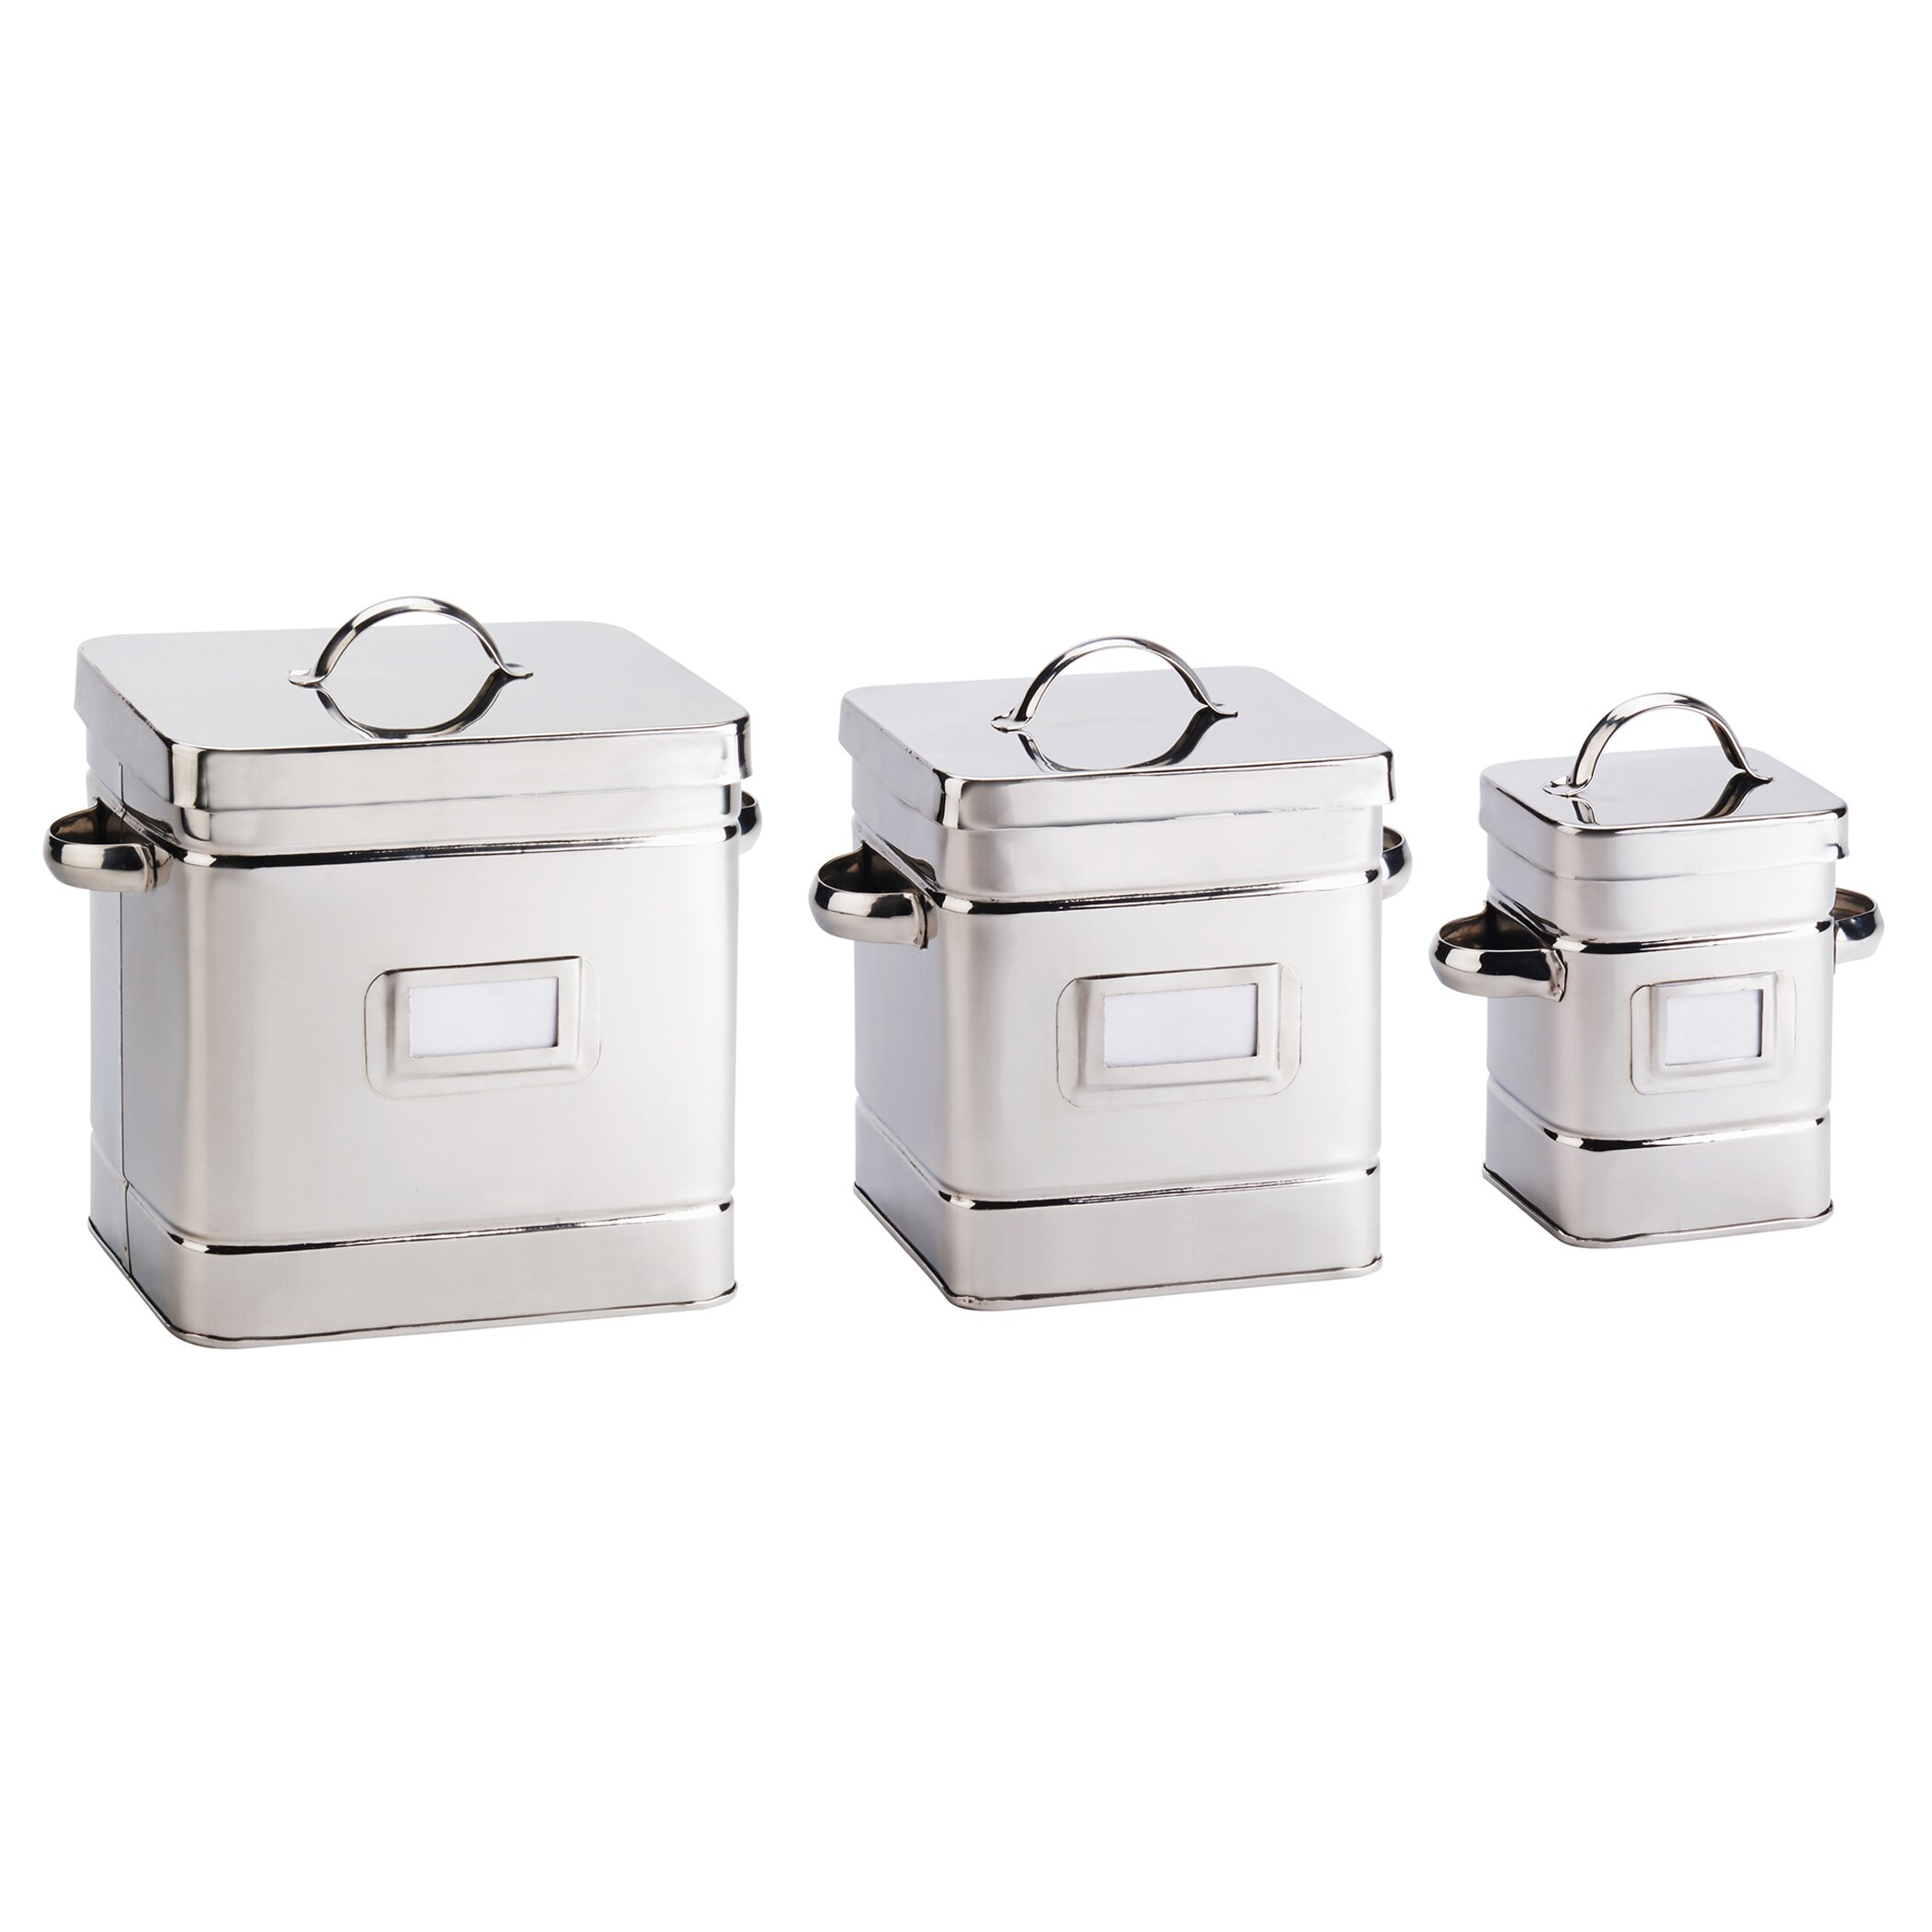 canisters by amici images reverse search